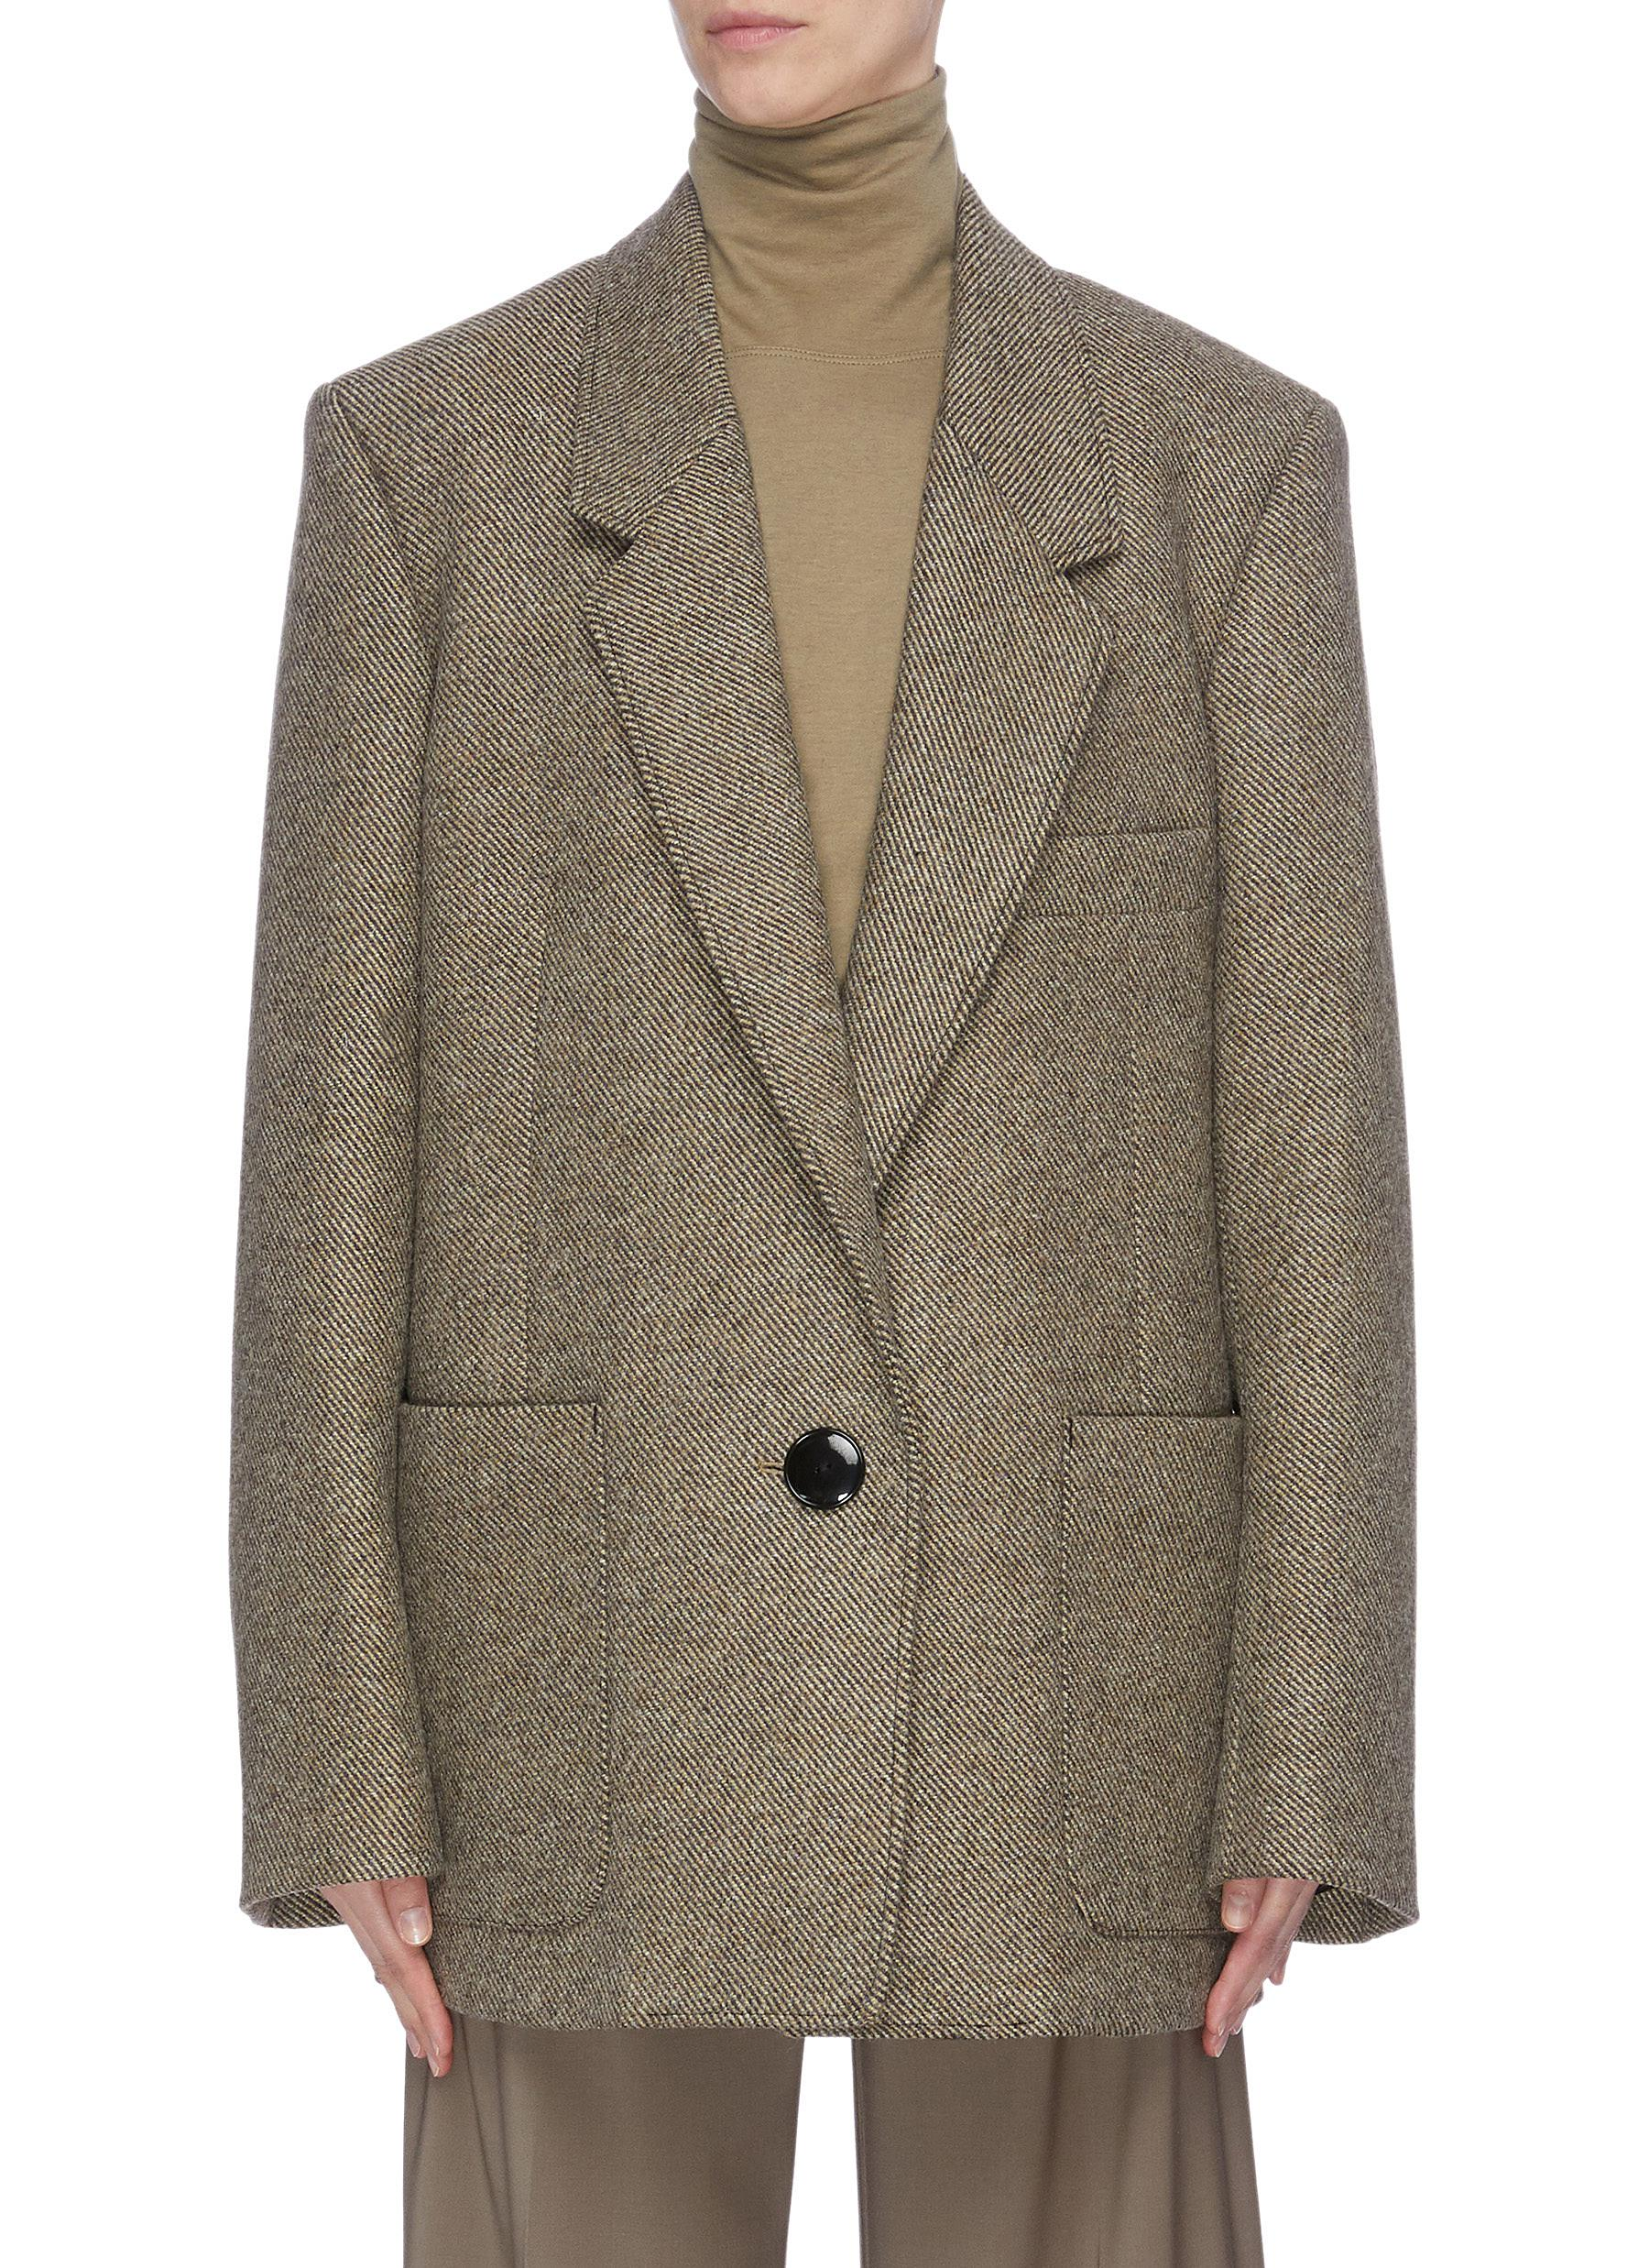 Twill blazer by Lemaire